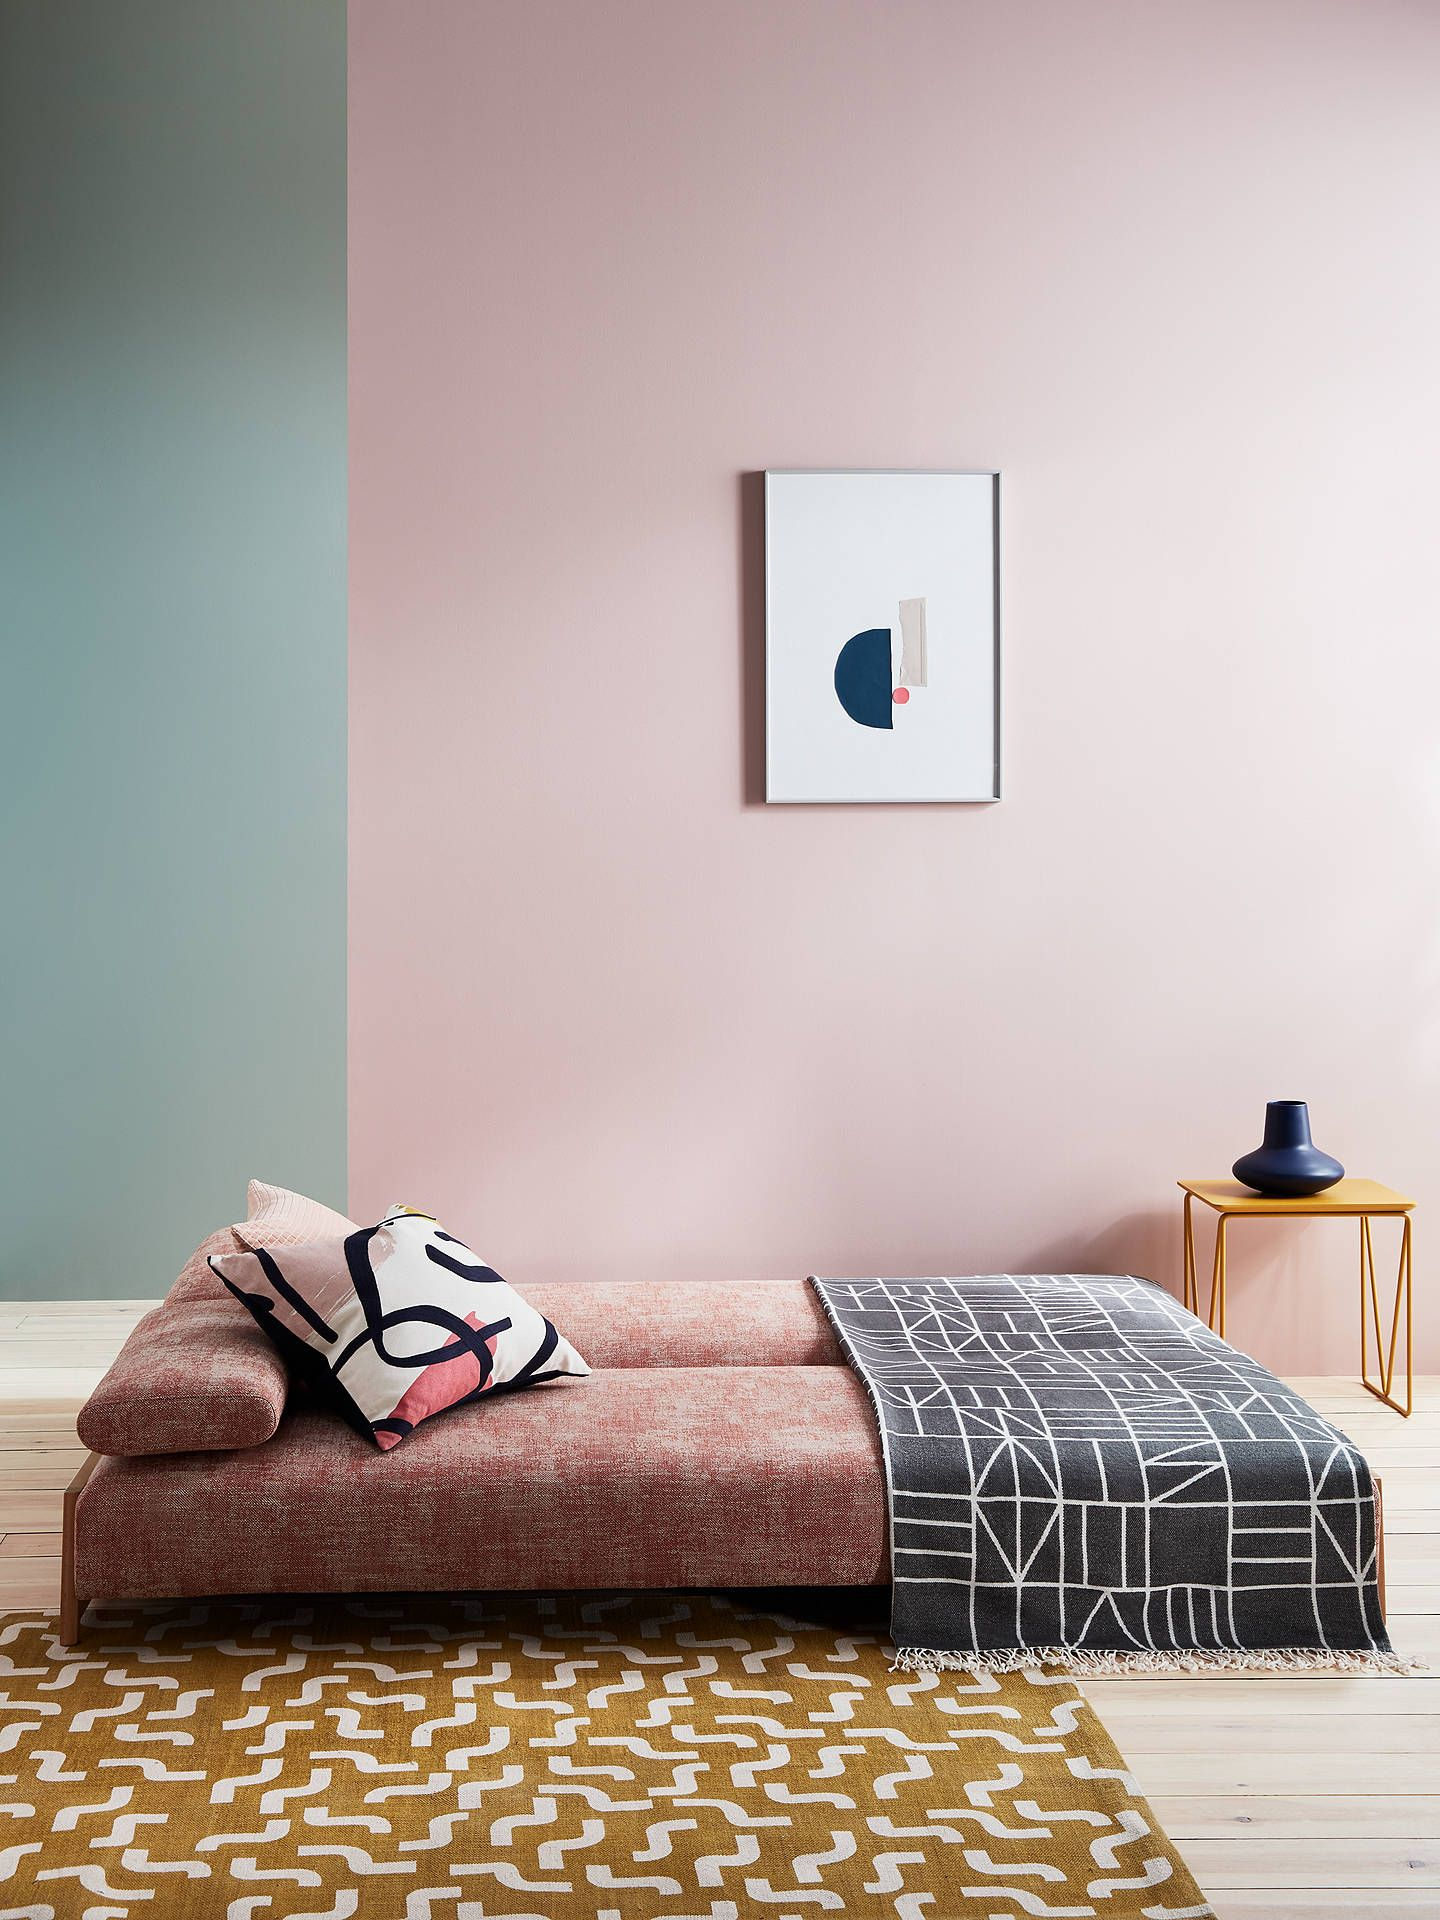 This John Lewis sofa bed is what hosting dreams are made